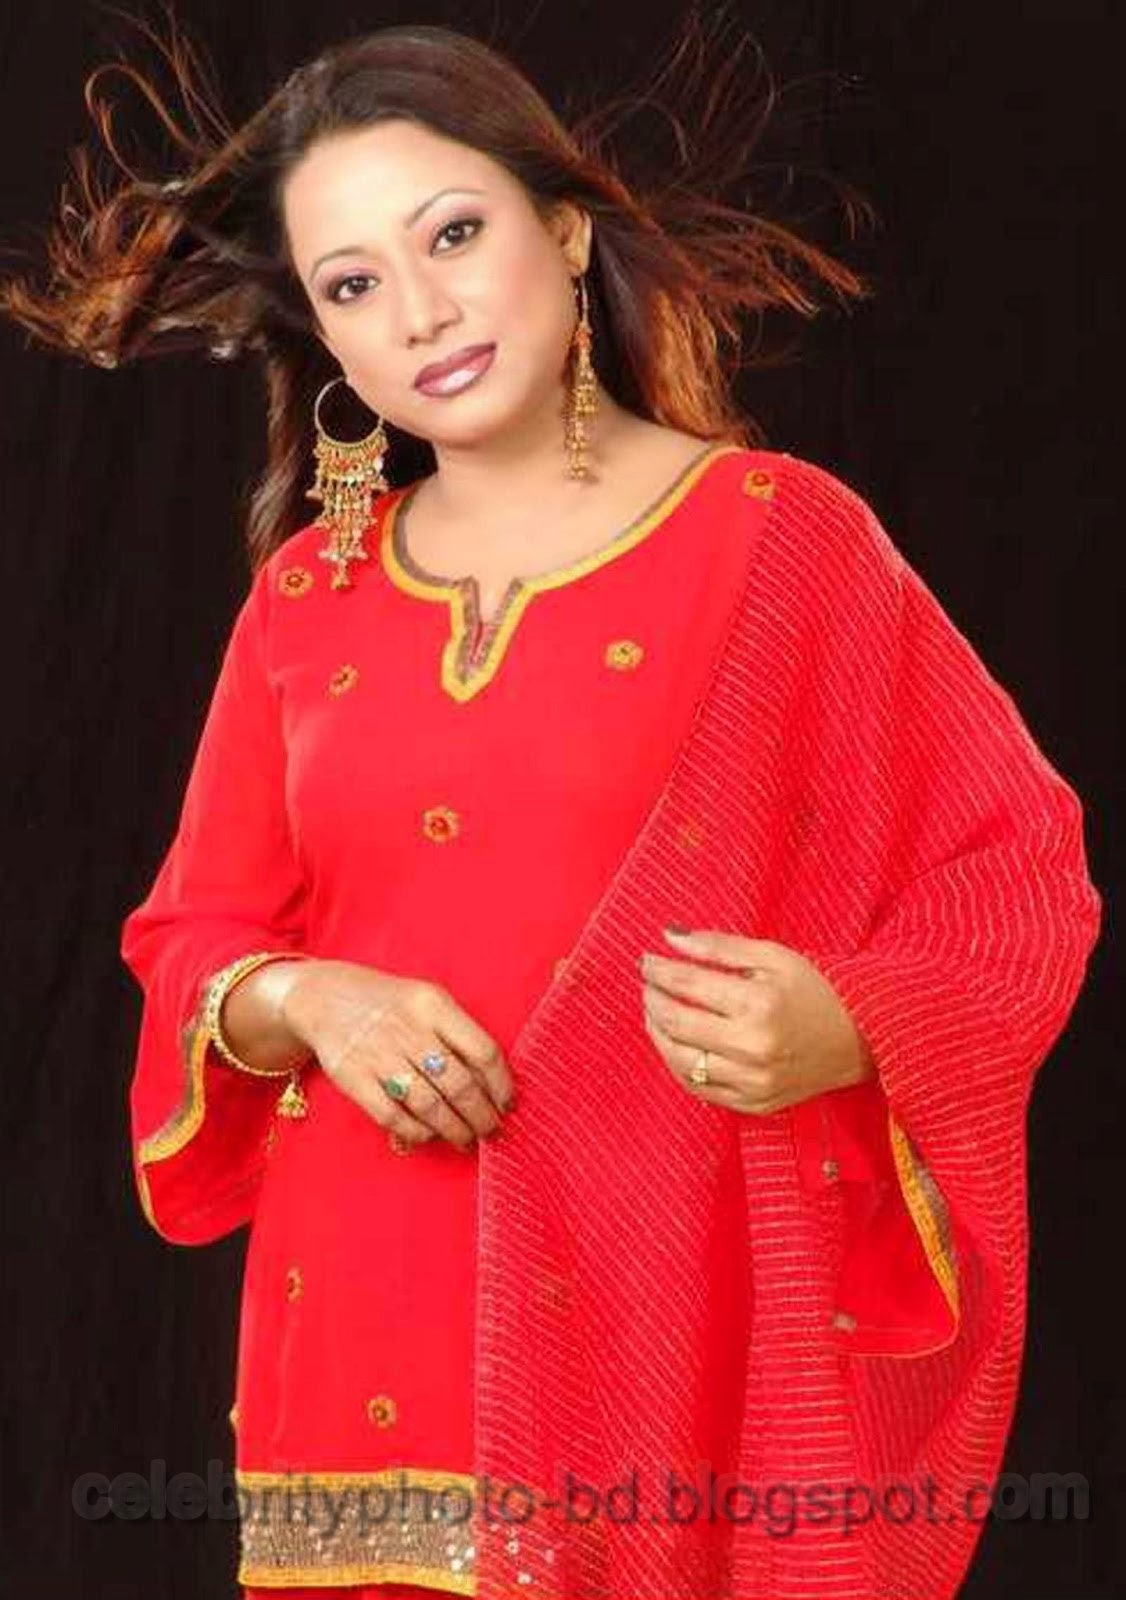 Beautiful Singer Alam Ara Minu's Latest Hot Photos Collection With Short Biography